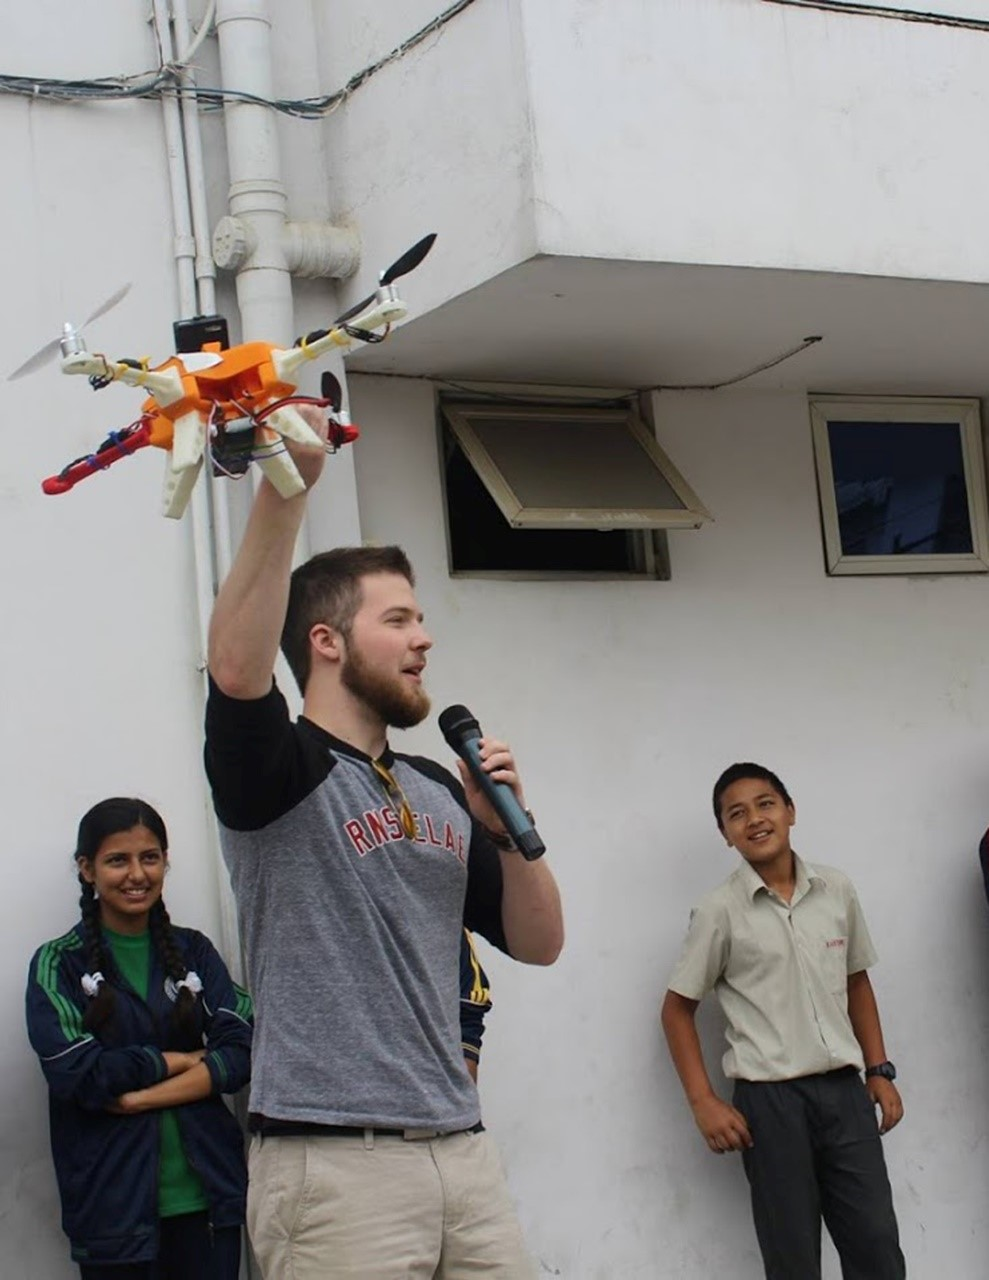 mck nepal 2017 mck showing drone to assembly.jpg